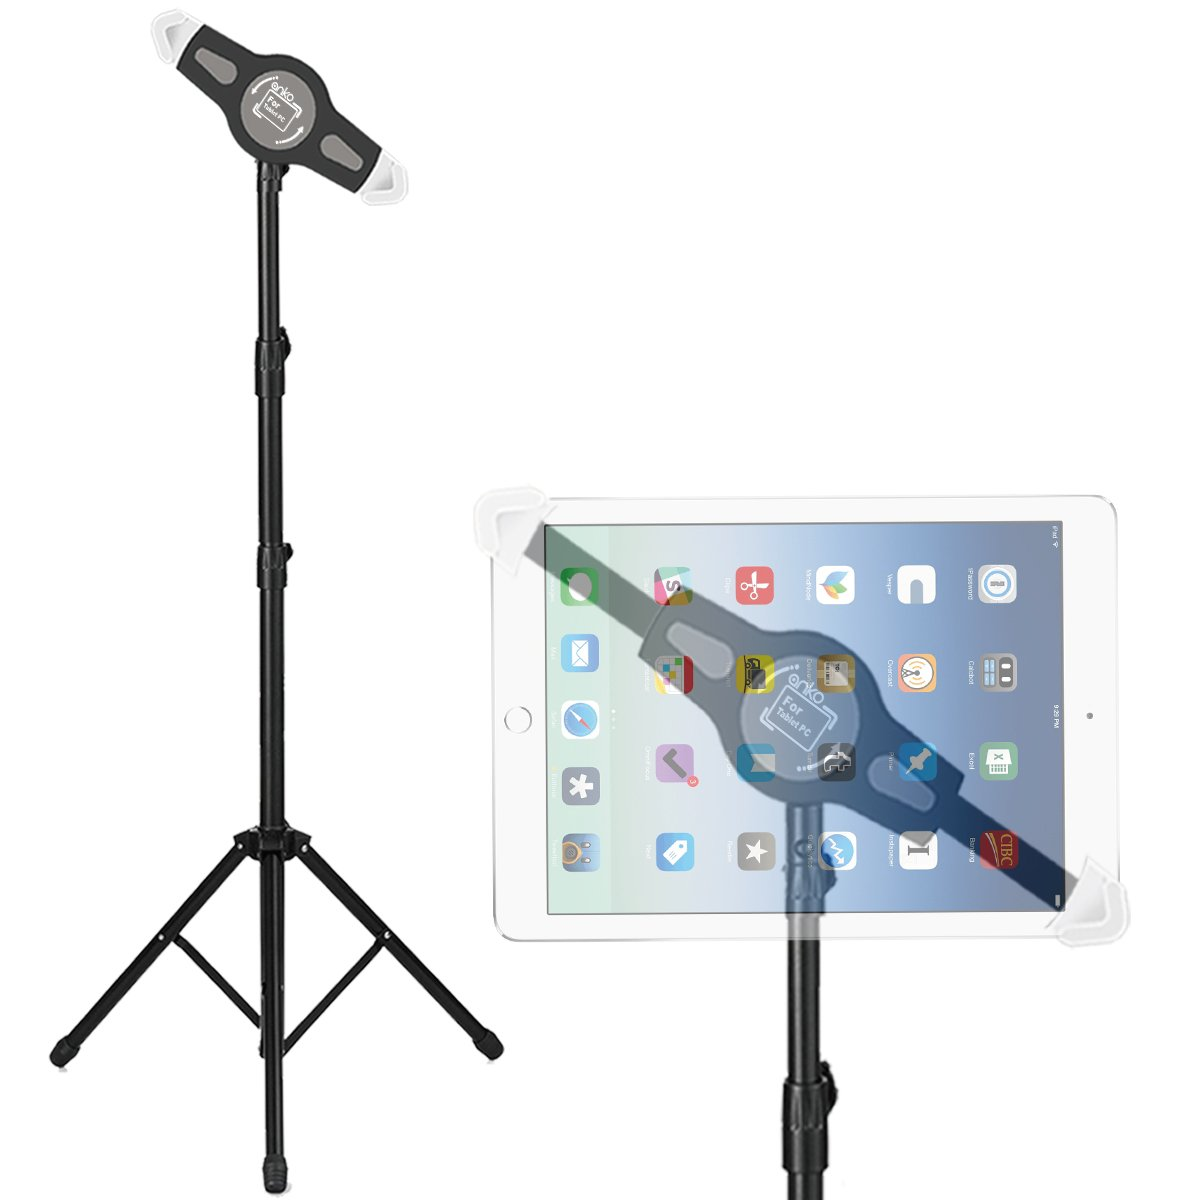 """Foldable Floor Tablet Tripod Stand Mount, ANKO iPad and Tablet Floor Height Adjustable 360 Rotating Stand for iPad Mini, iPad Air, iPad 1,2,3,4, Samsung Galaxy and All 7"""" to 12"""" Tablets(BLACK)"""